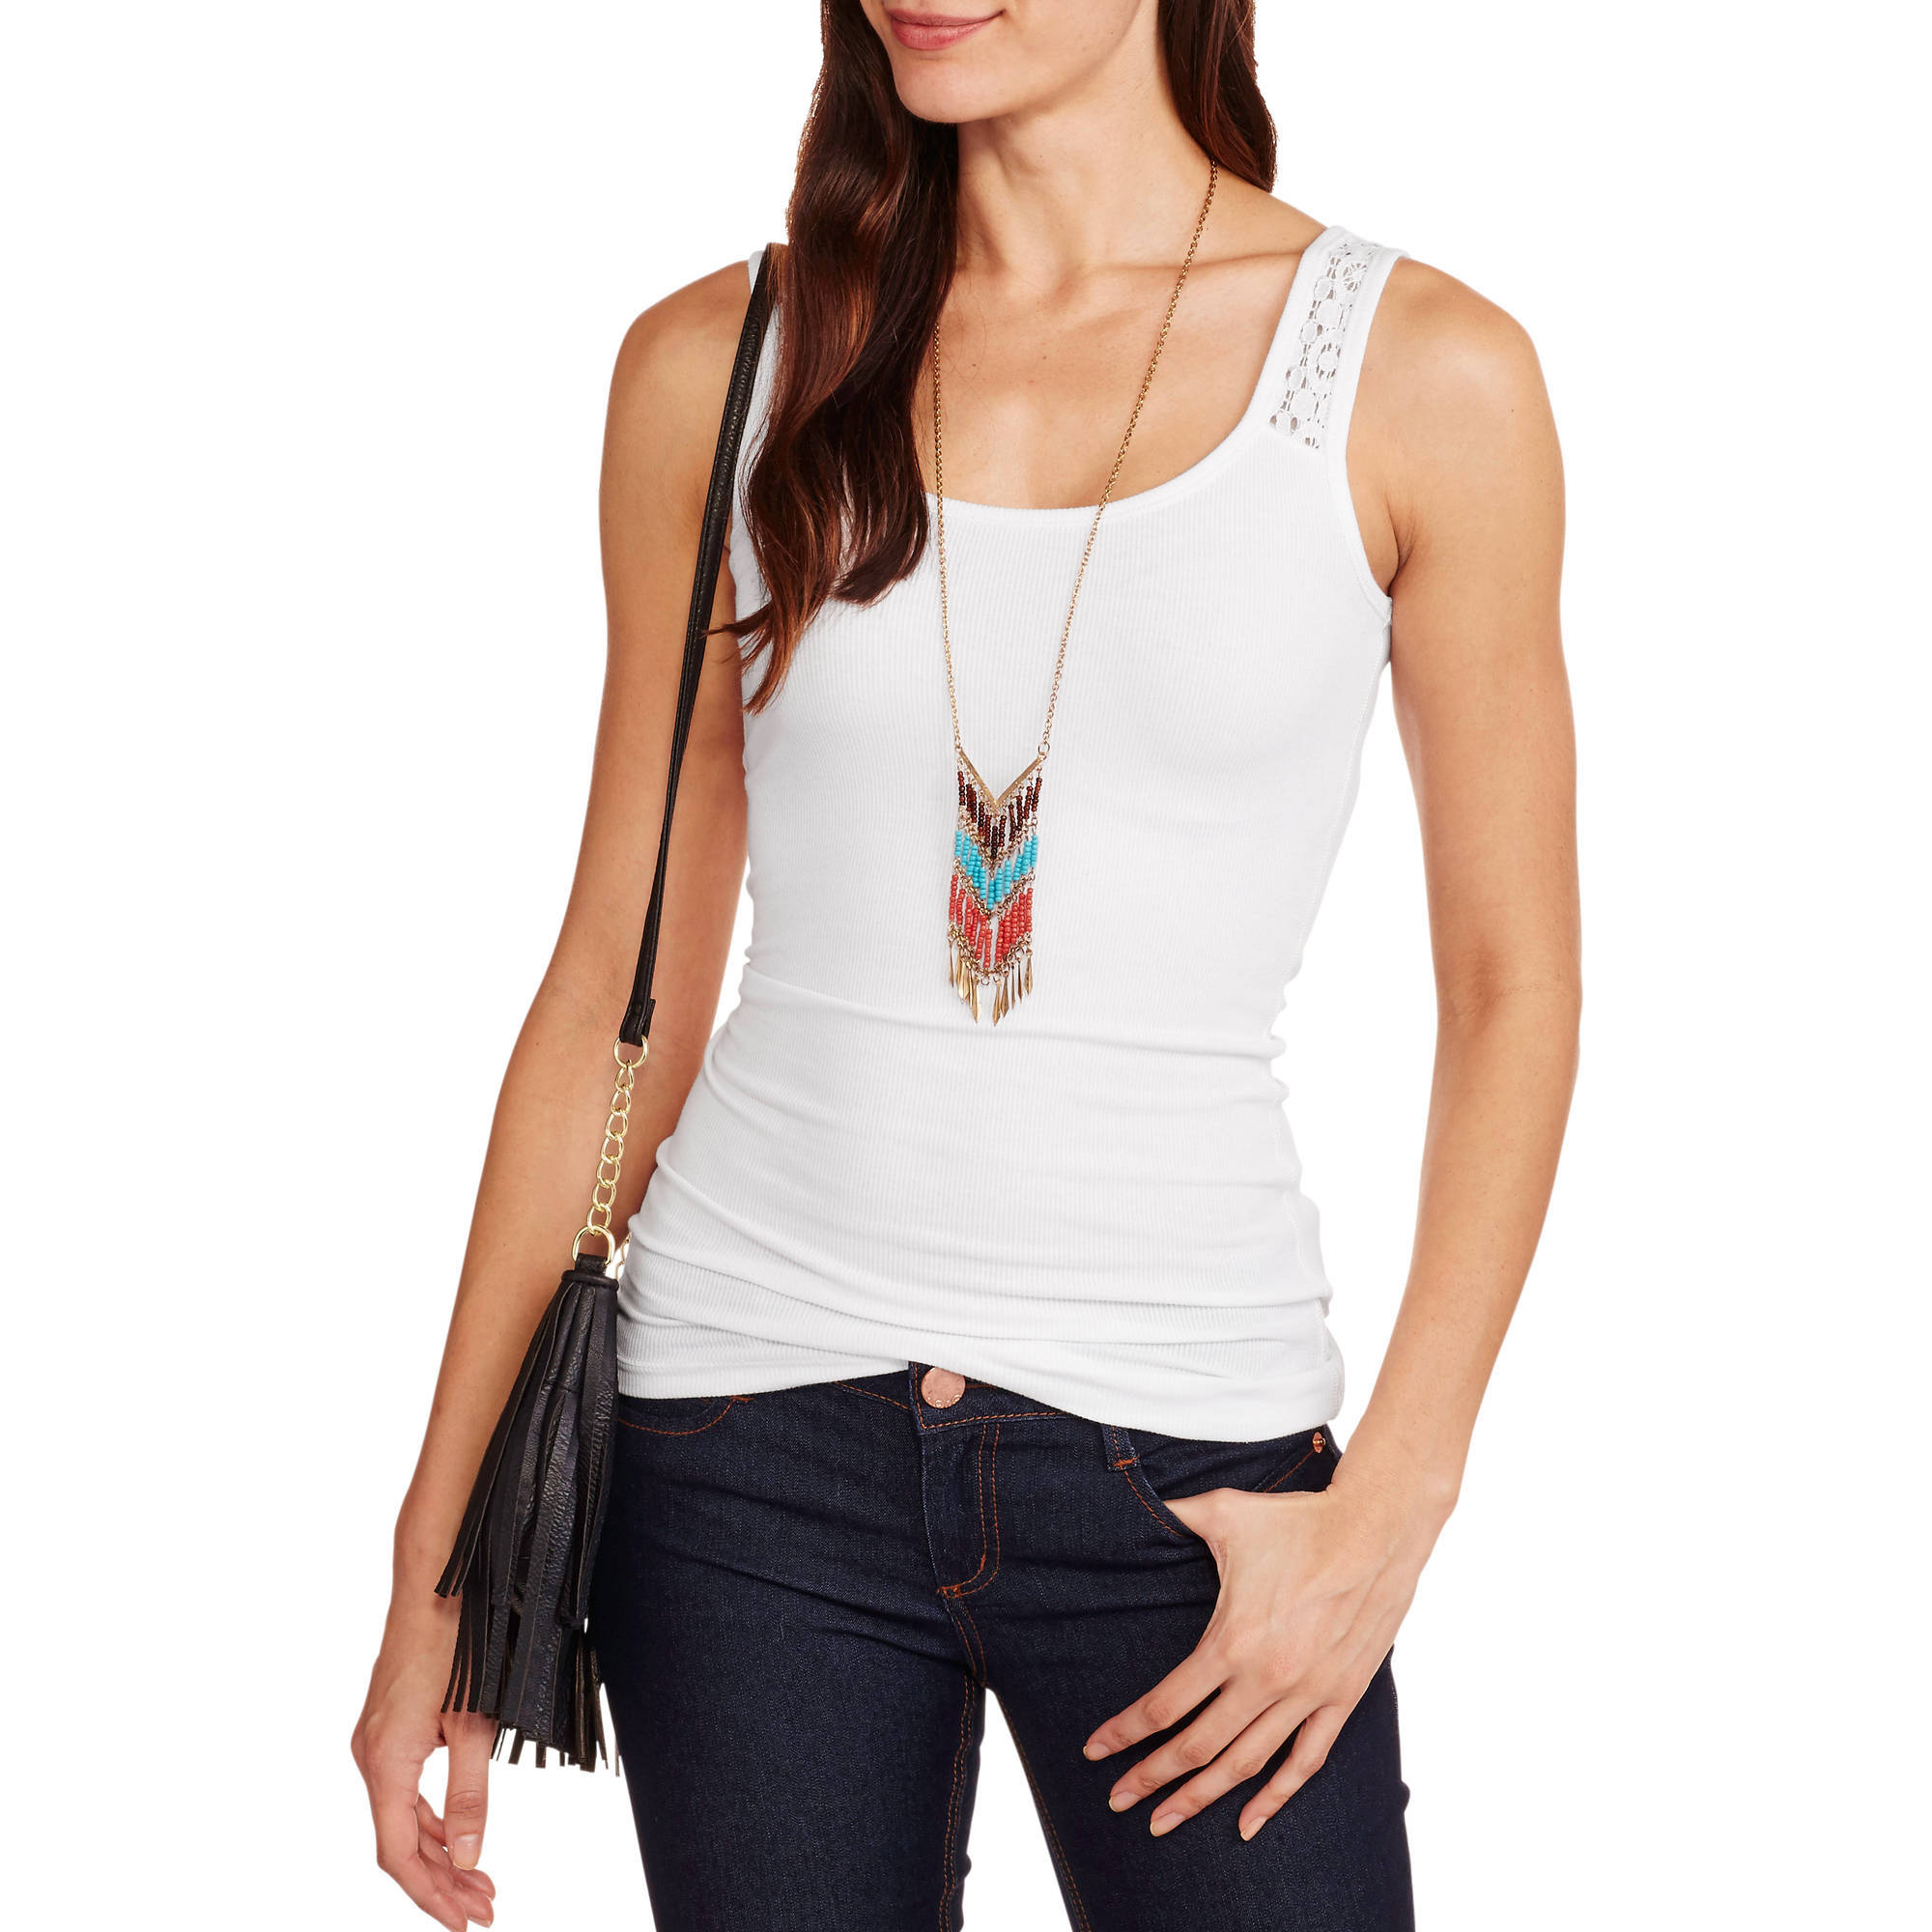 Faded Glory Women's Tank with Lace Inset